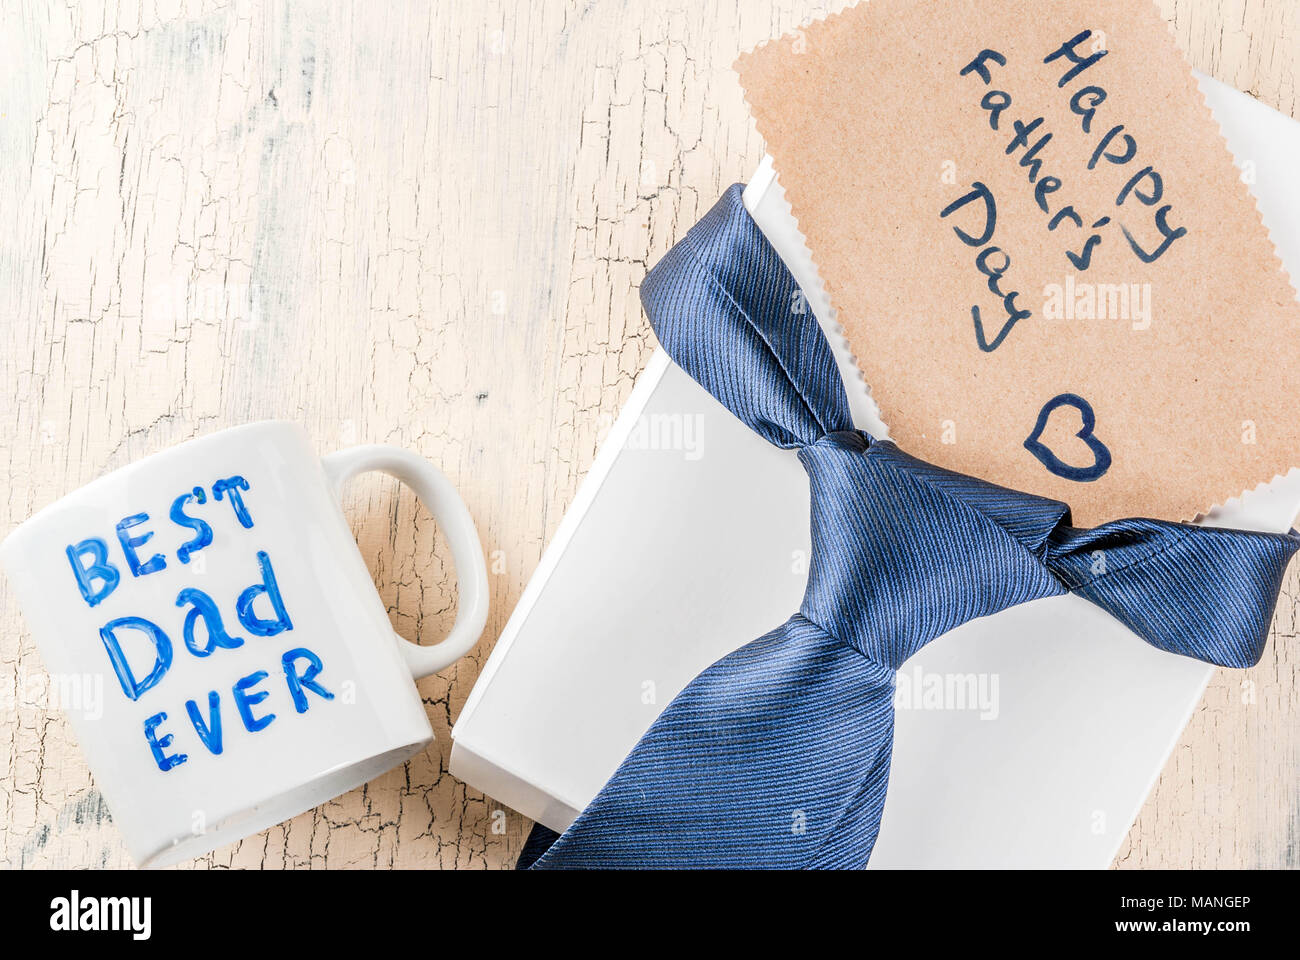 Father S Day Gift Concept Greeting Card Background Gift Box Tie Decoration Mug With Inscription Best Dad Ever Notebook Copy Space Top View Stock Photo Alamy